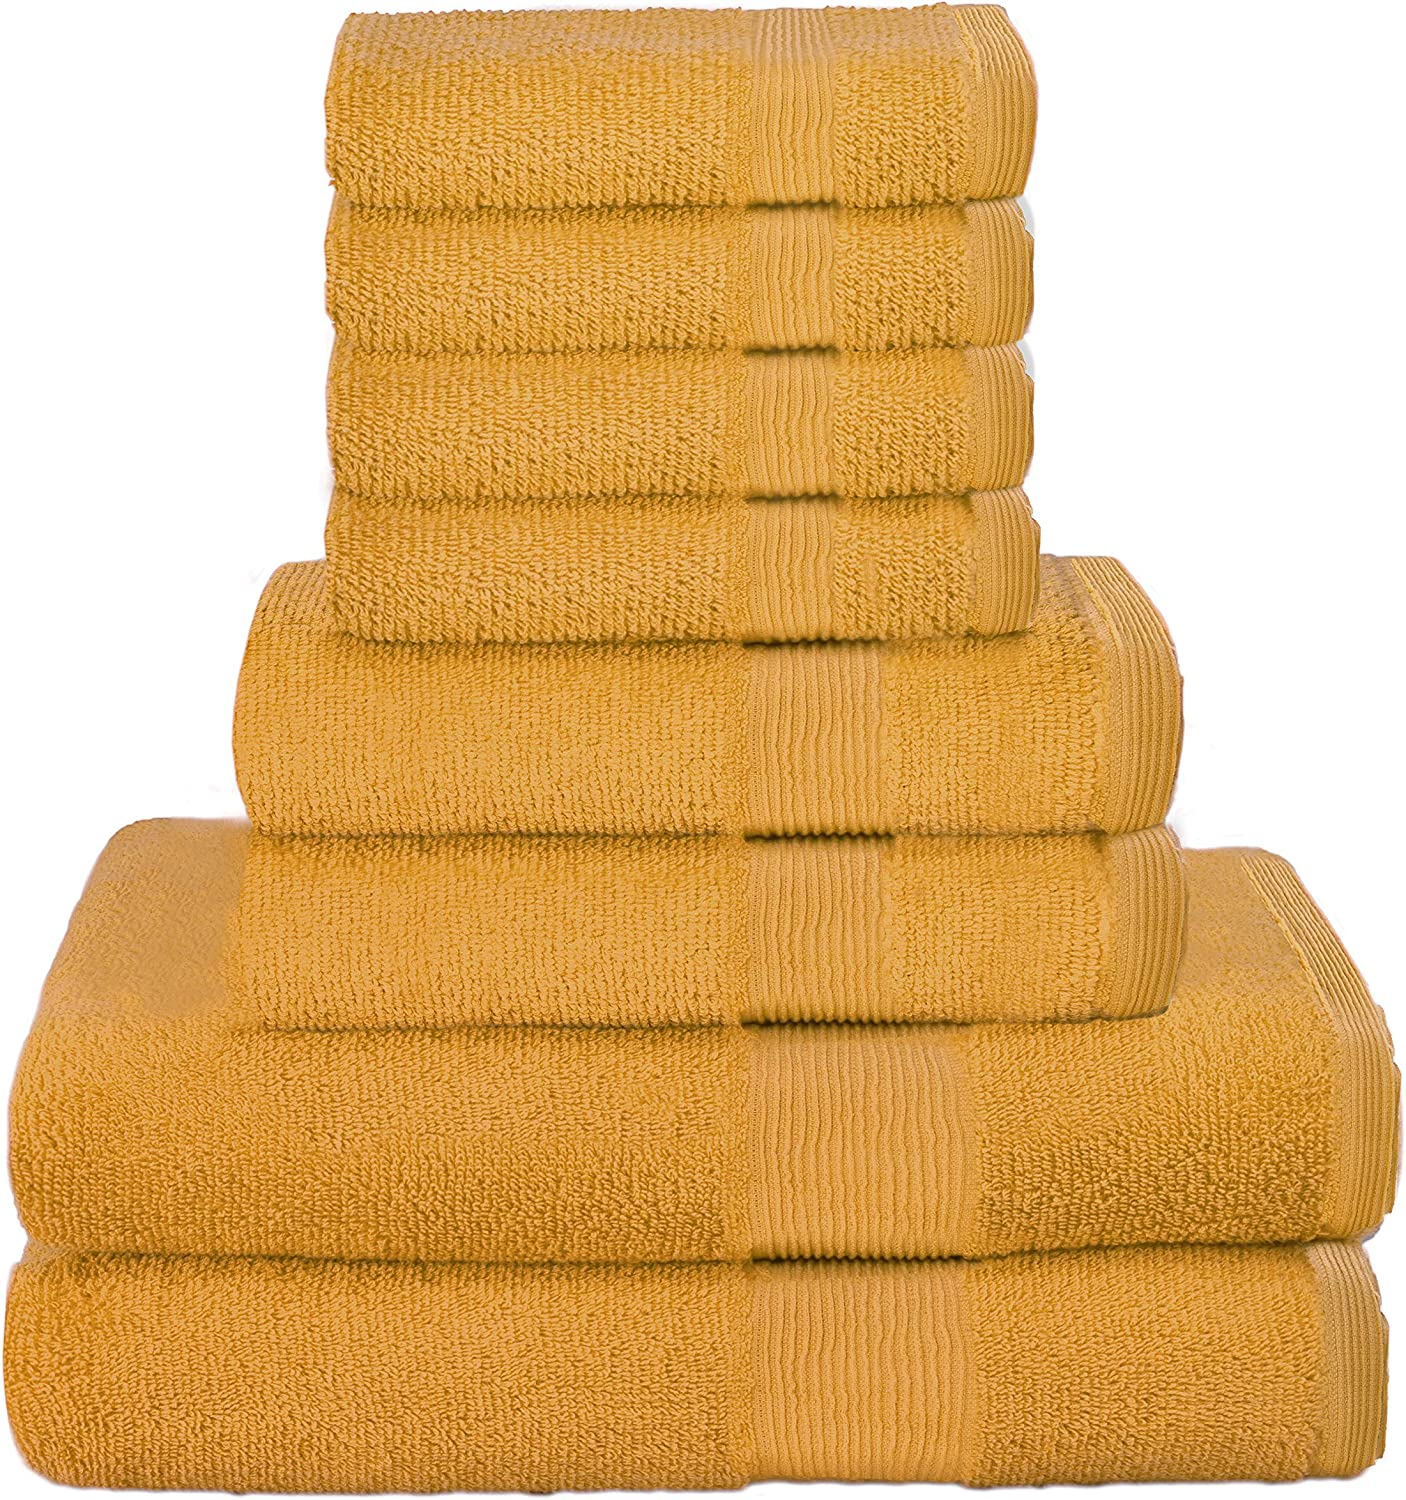 Elvana Home 8 Piece Towel Set 100% Ring Spun Cotton, 2 Bath Towels 27x54, 2 Hand Towels 16x28 and 4 Washcloths 13x13 - Ultra Soft Highly Absorbent Machine Washable Hotel Spa Quality - Yellow